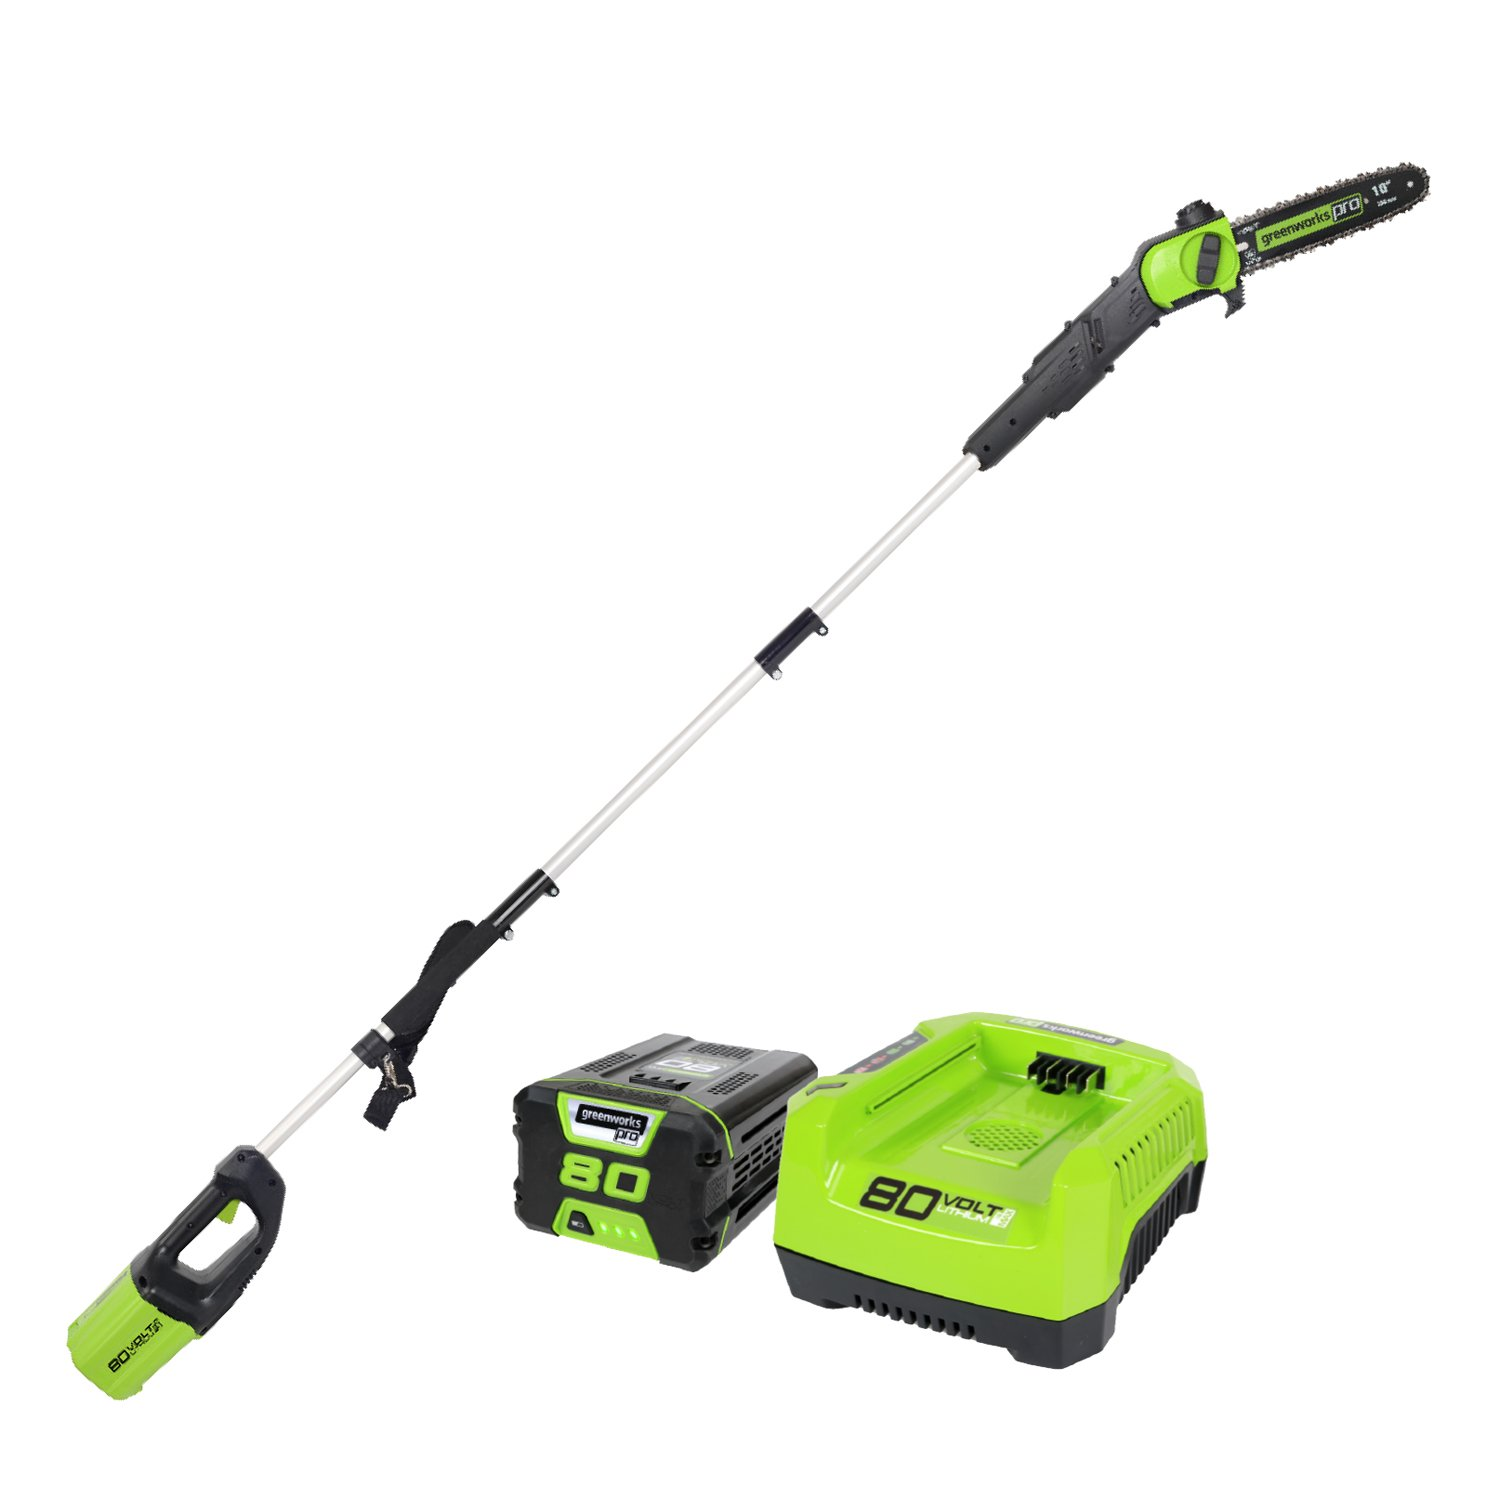 Greenworks PRO 80V 10'' Brushless Cordless Polesaw, 2Ah Battery Included PS80L210 by Greenworks